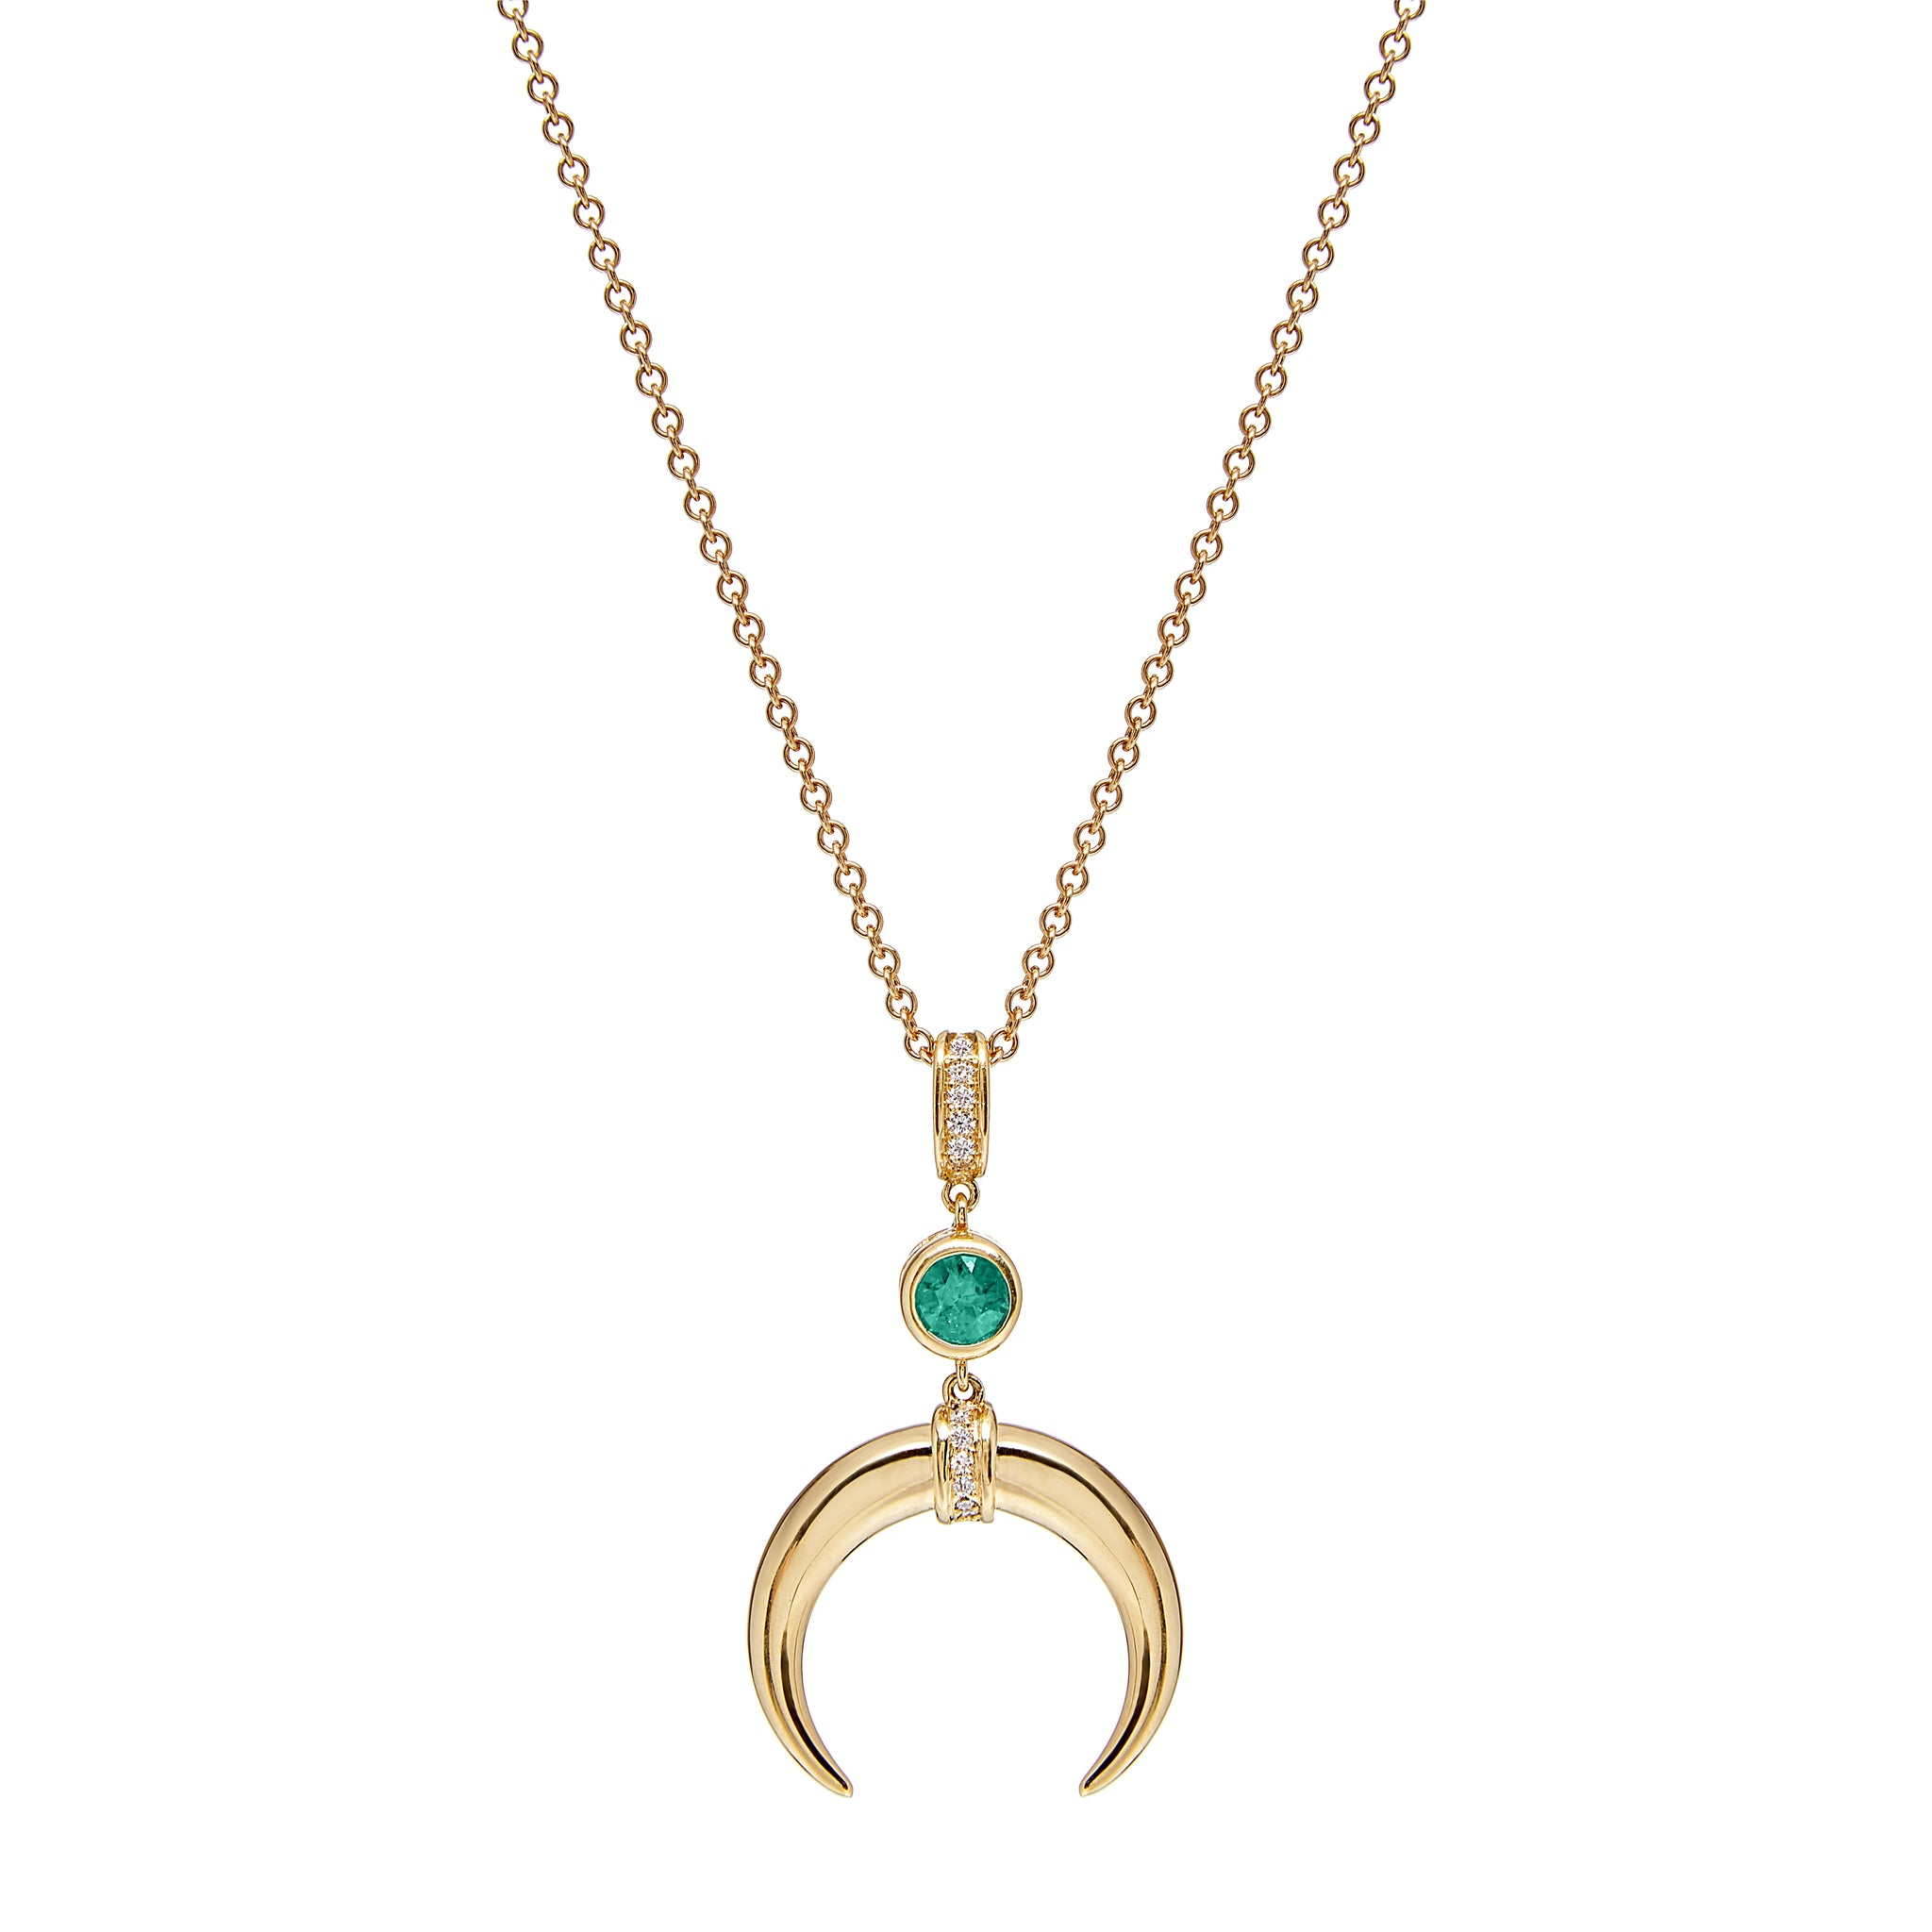 Cahora Bassa - Emerald with Diamonds